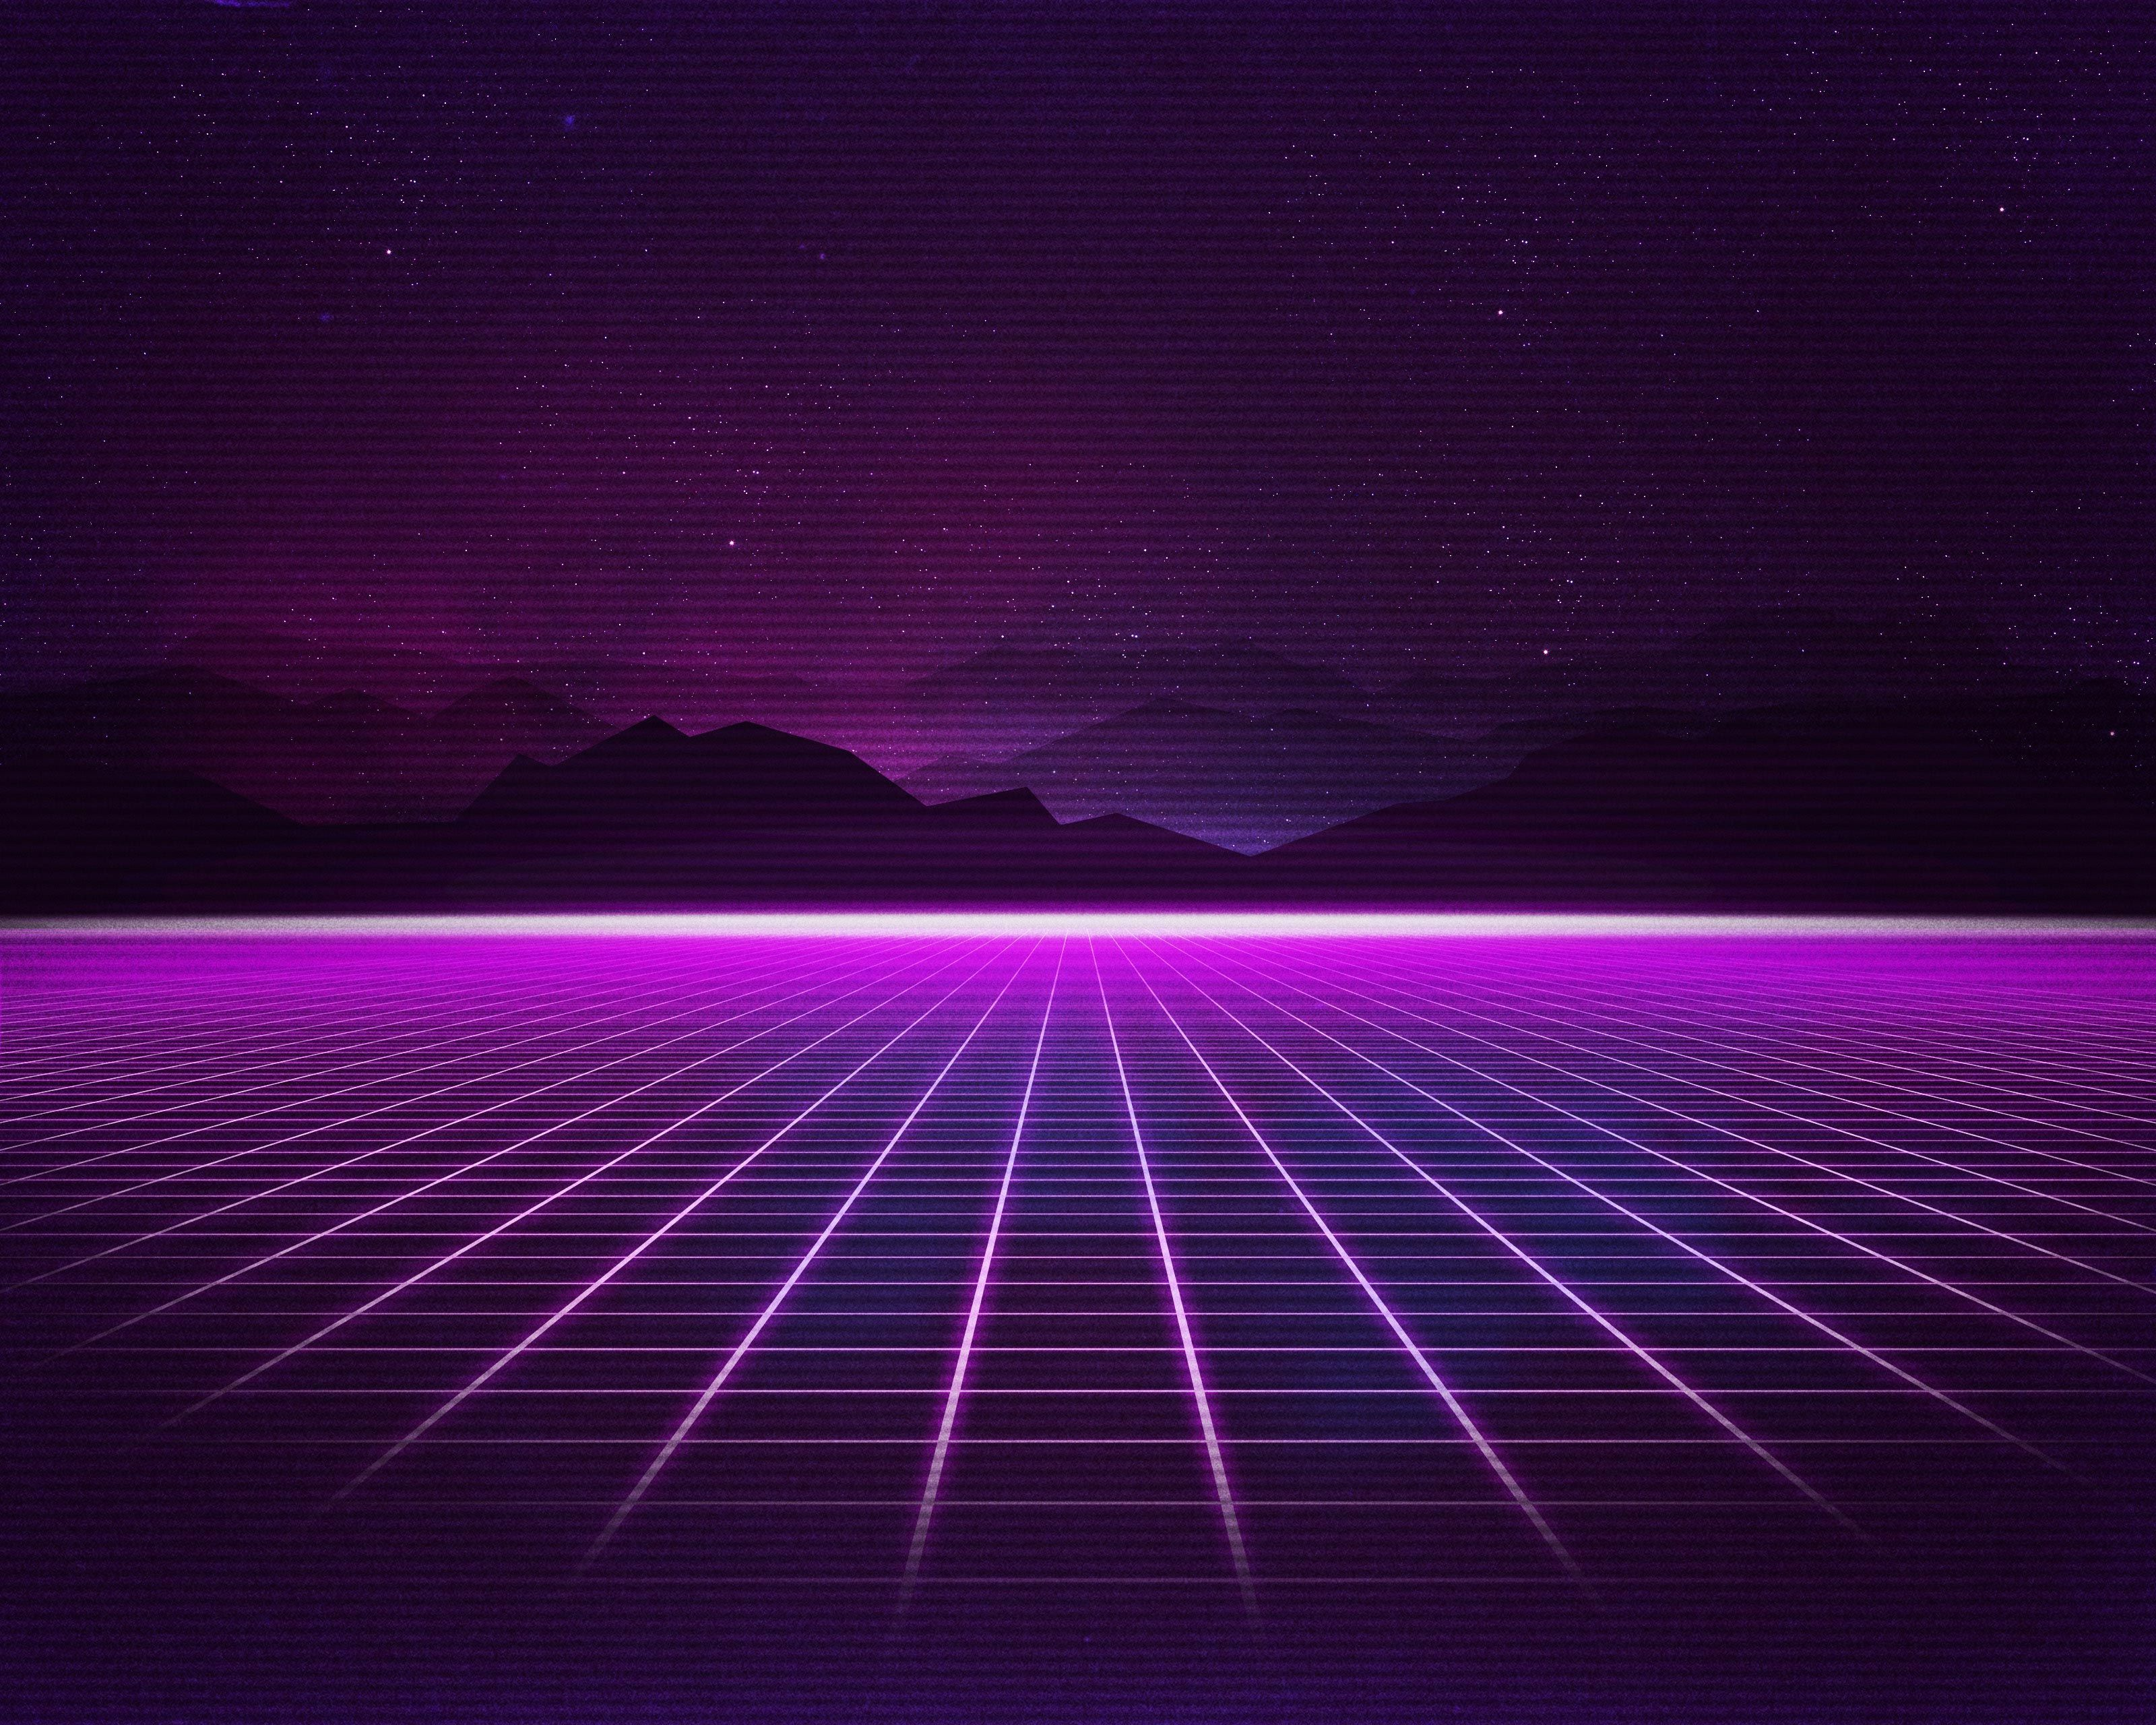 Retro Background Images HD HD Wallpapers 3200x2560